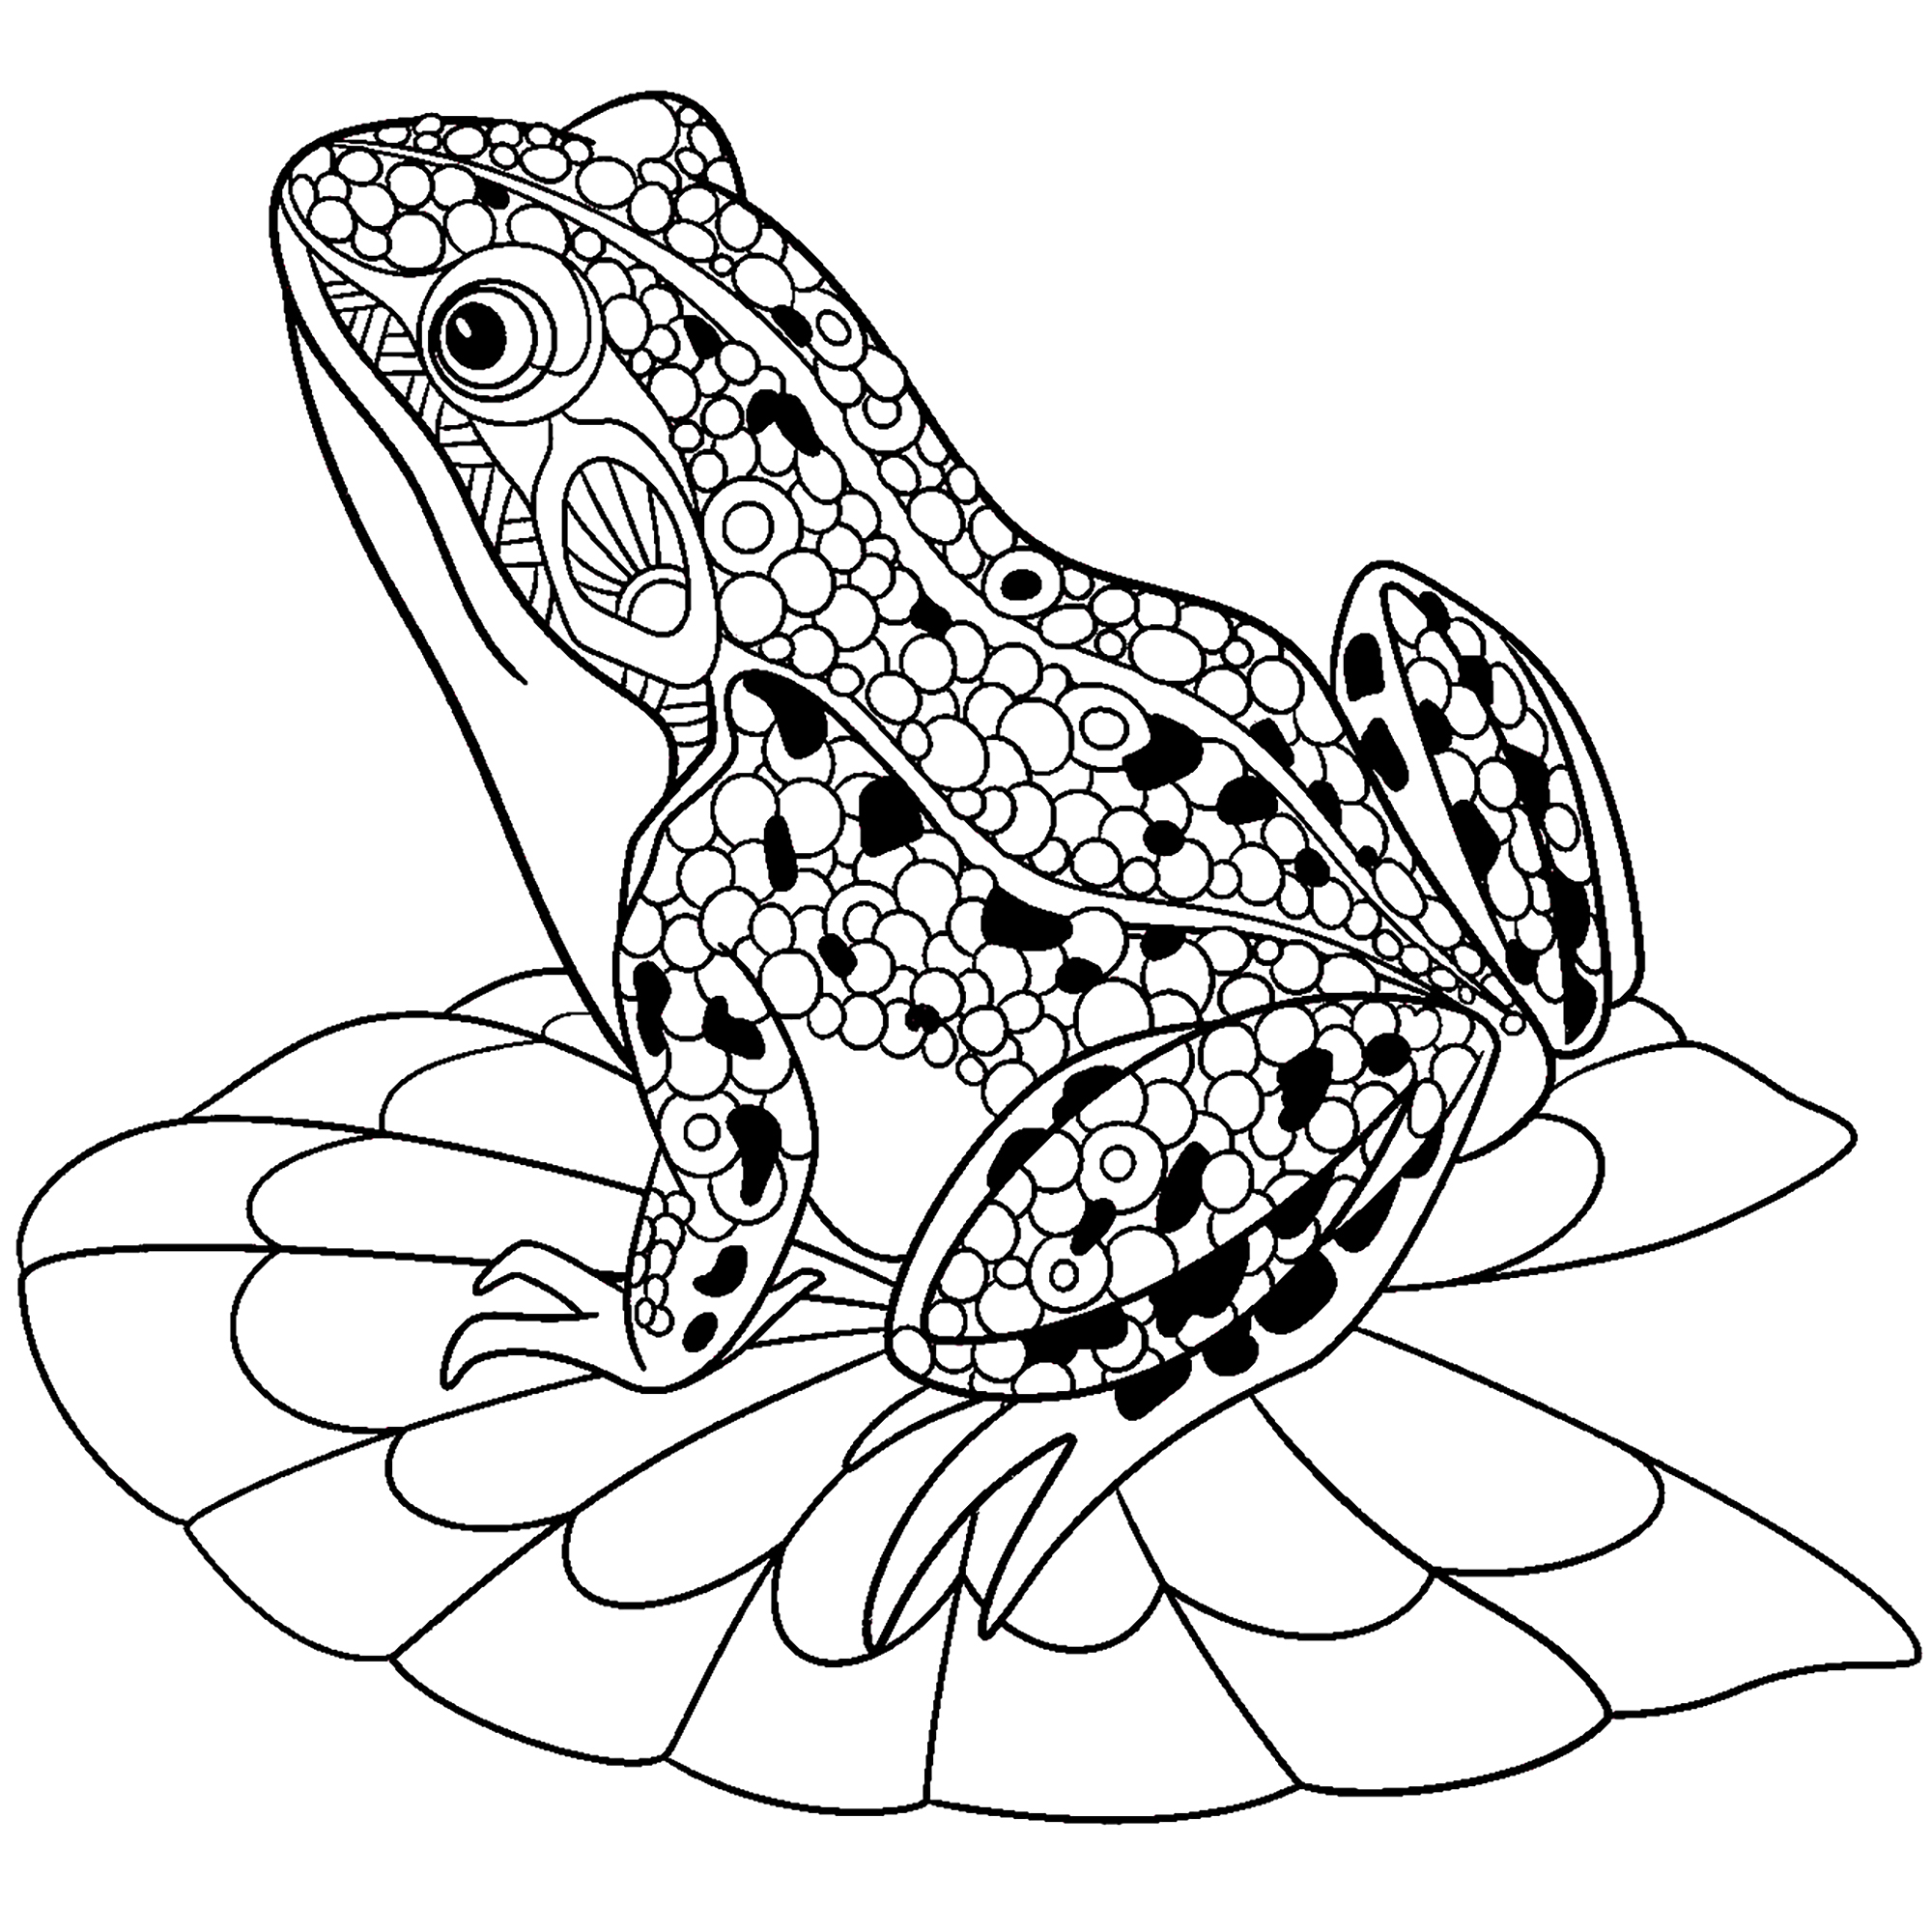 Frogs free to color for children